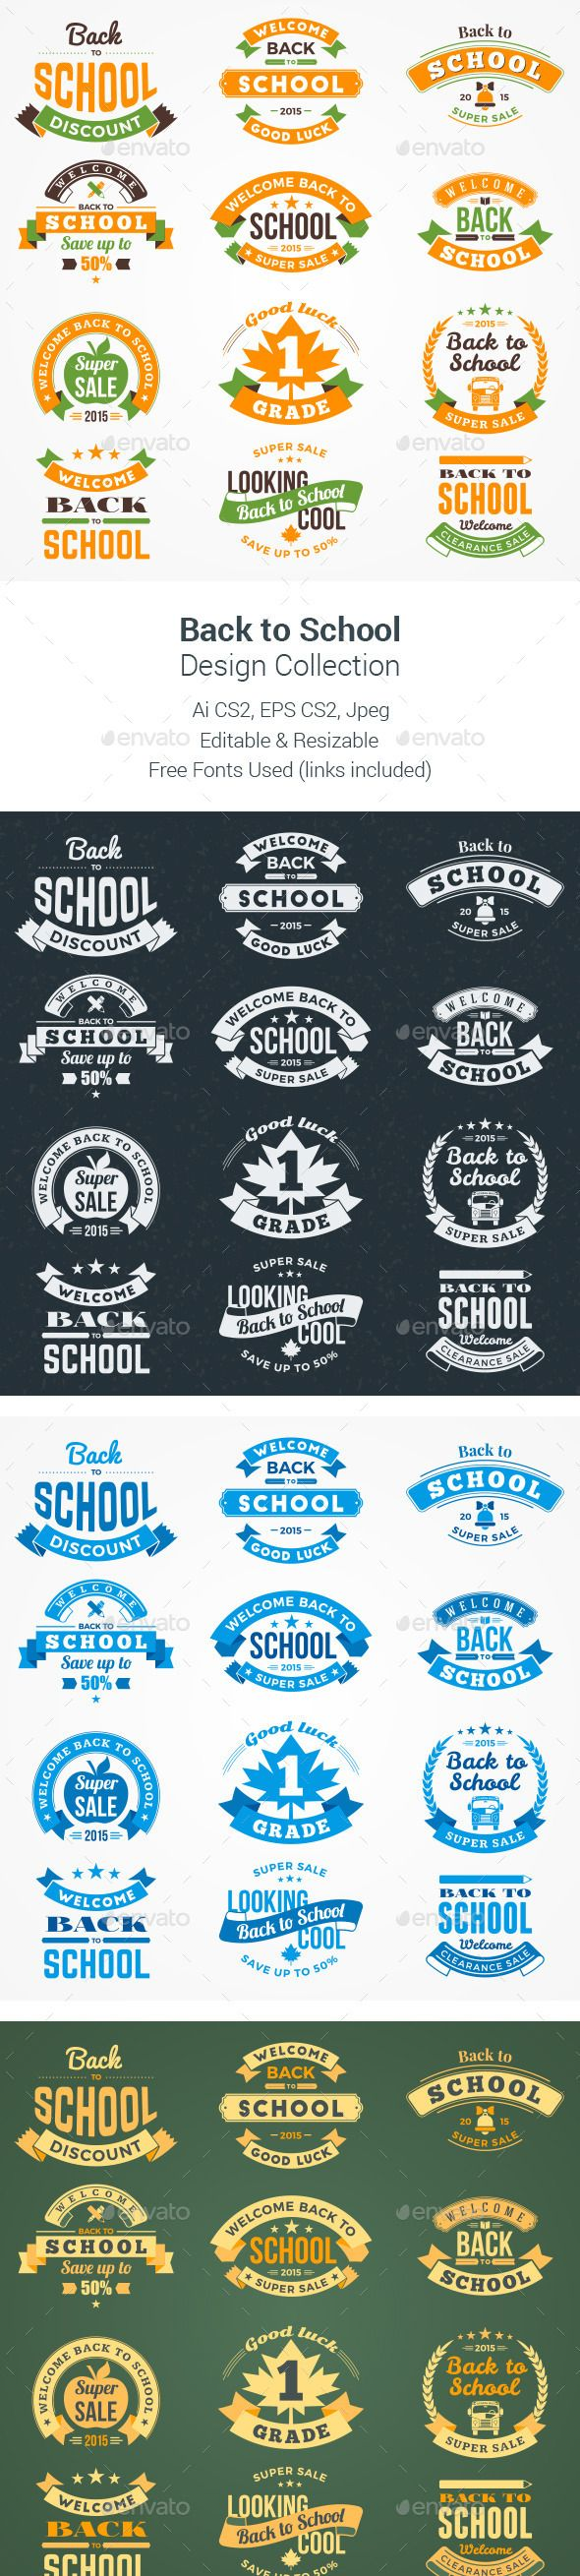 Back to School Design Collection #design Download: http://graphicriver.net/item/back-to-school-design-collection/12464547?ref=ksioks